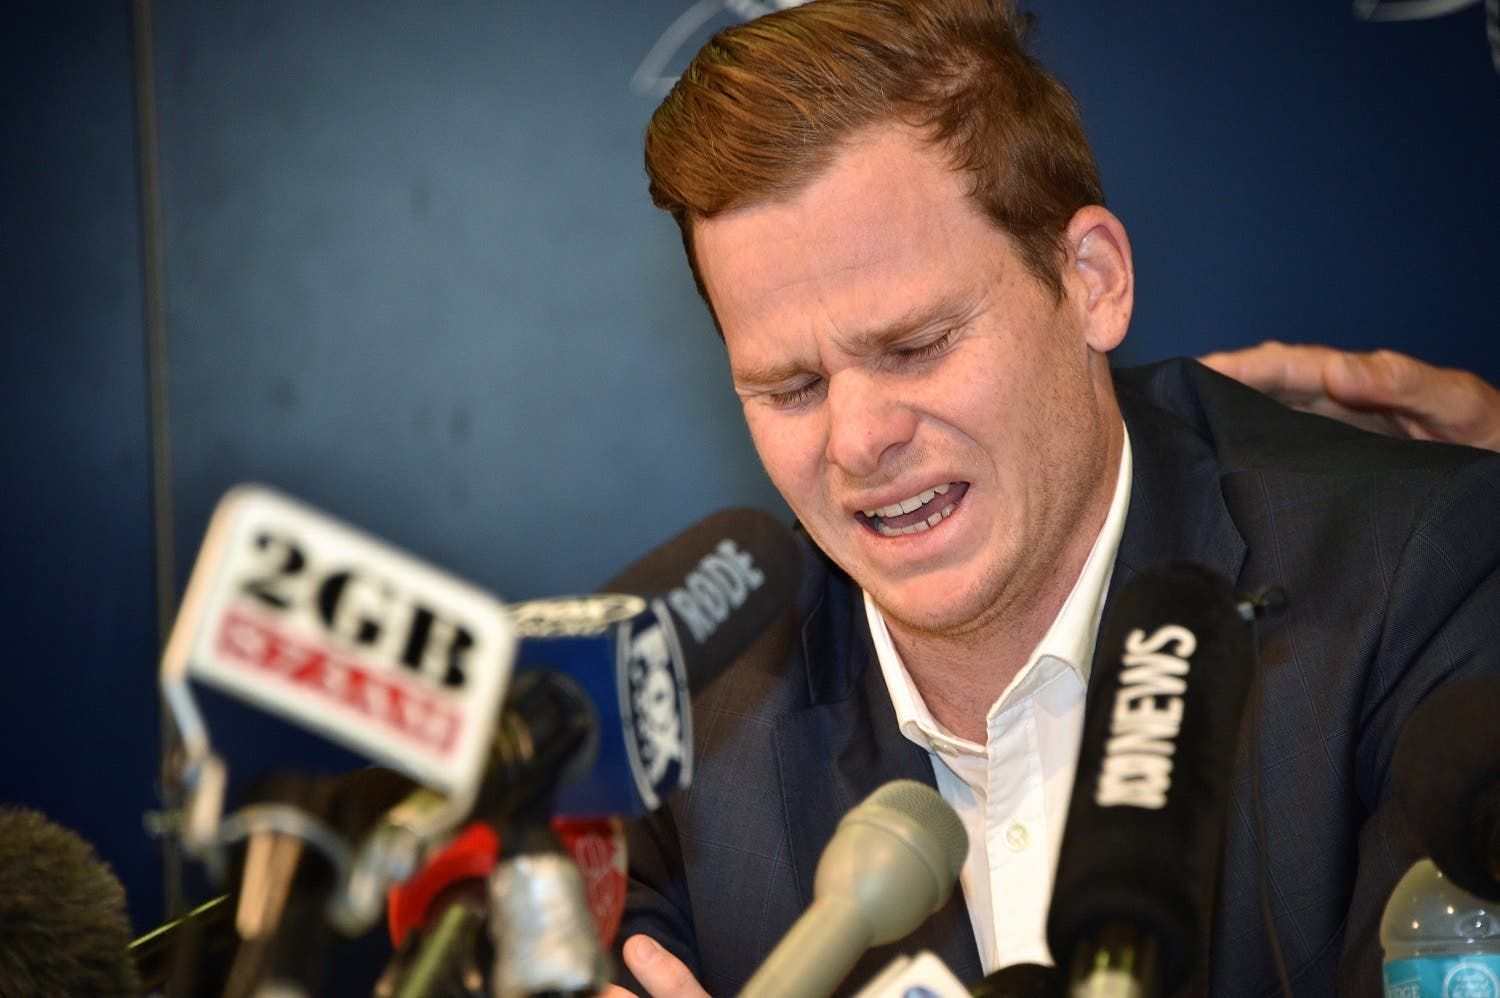 Cricketer Steve Smith reacts at a press conference at the airport in Sydney on March 29, 2018, after returning from South Africa. (AFP)